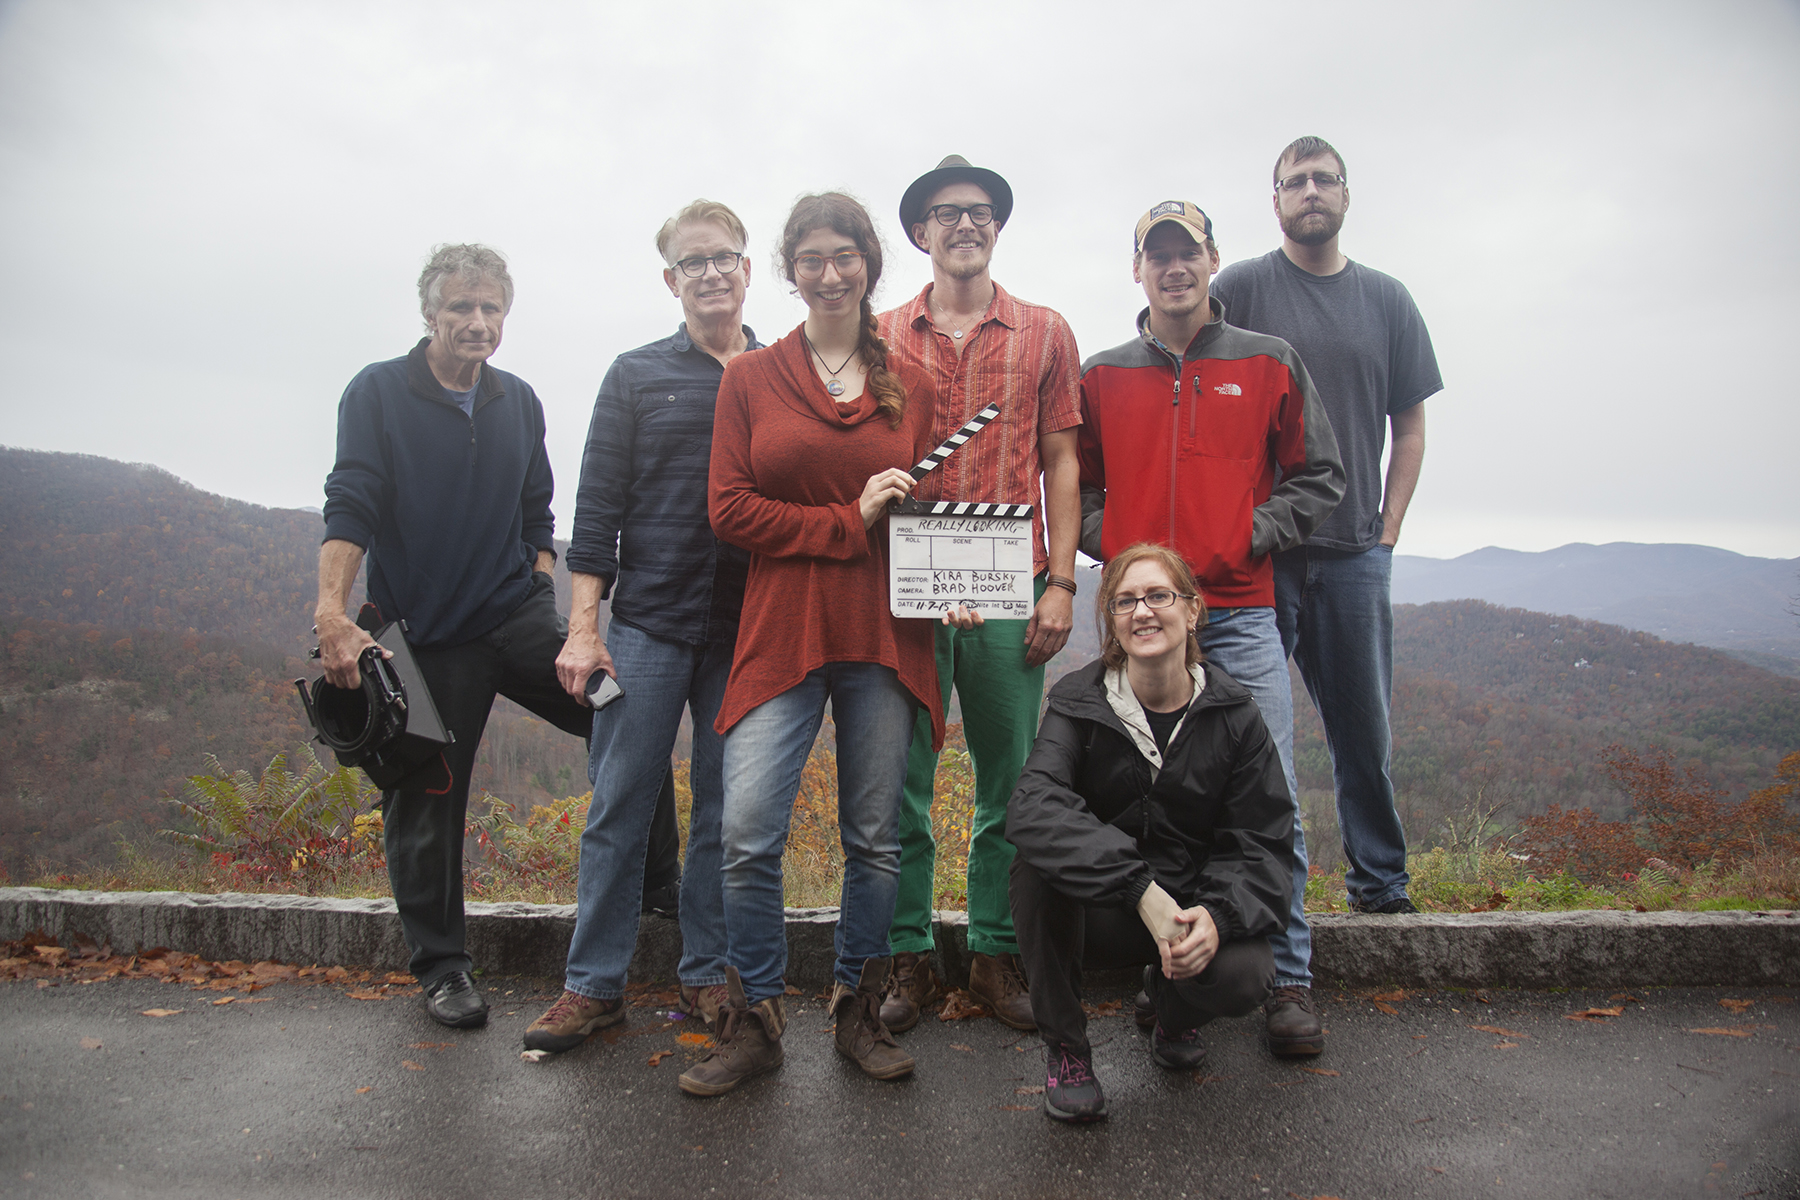 Filming for Massada, full cast and crew for Day 1.